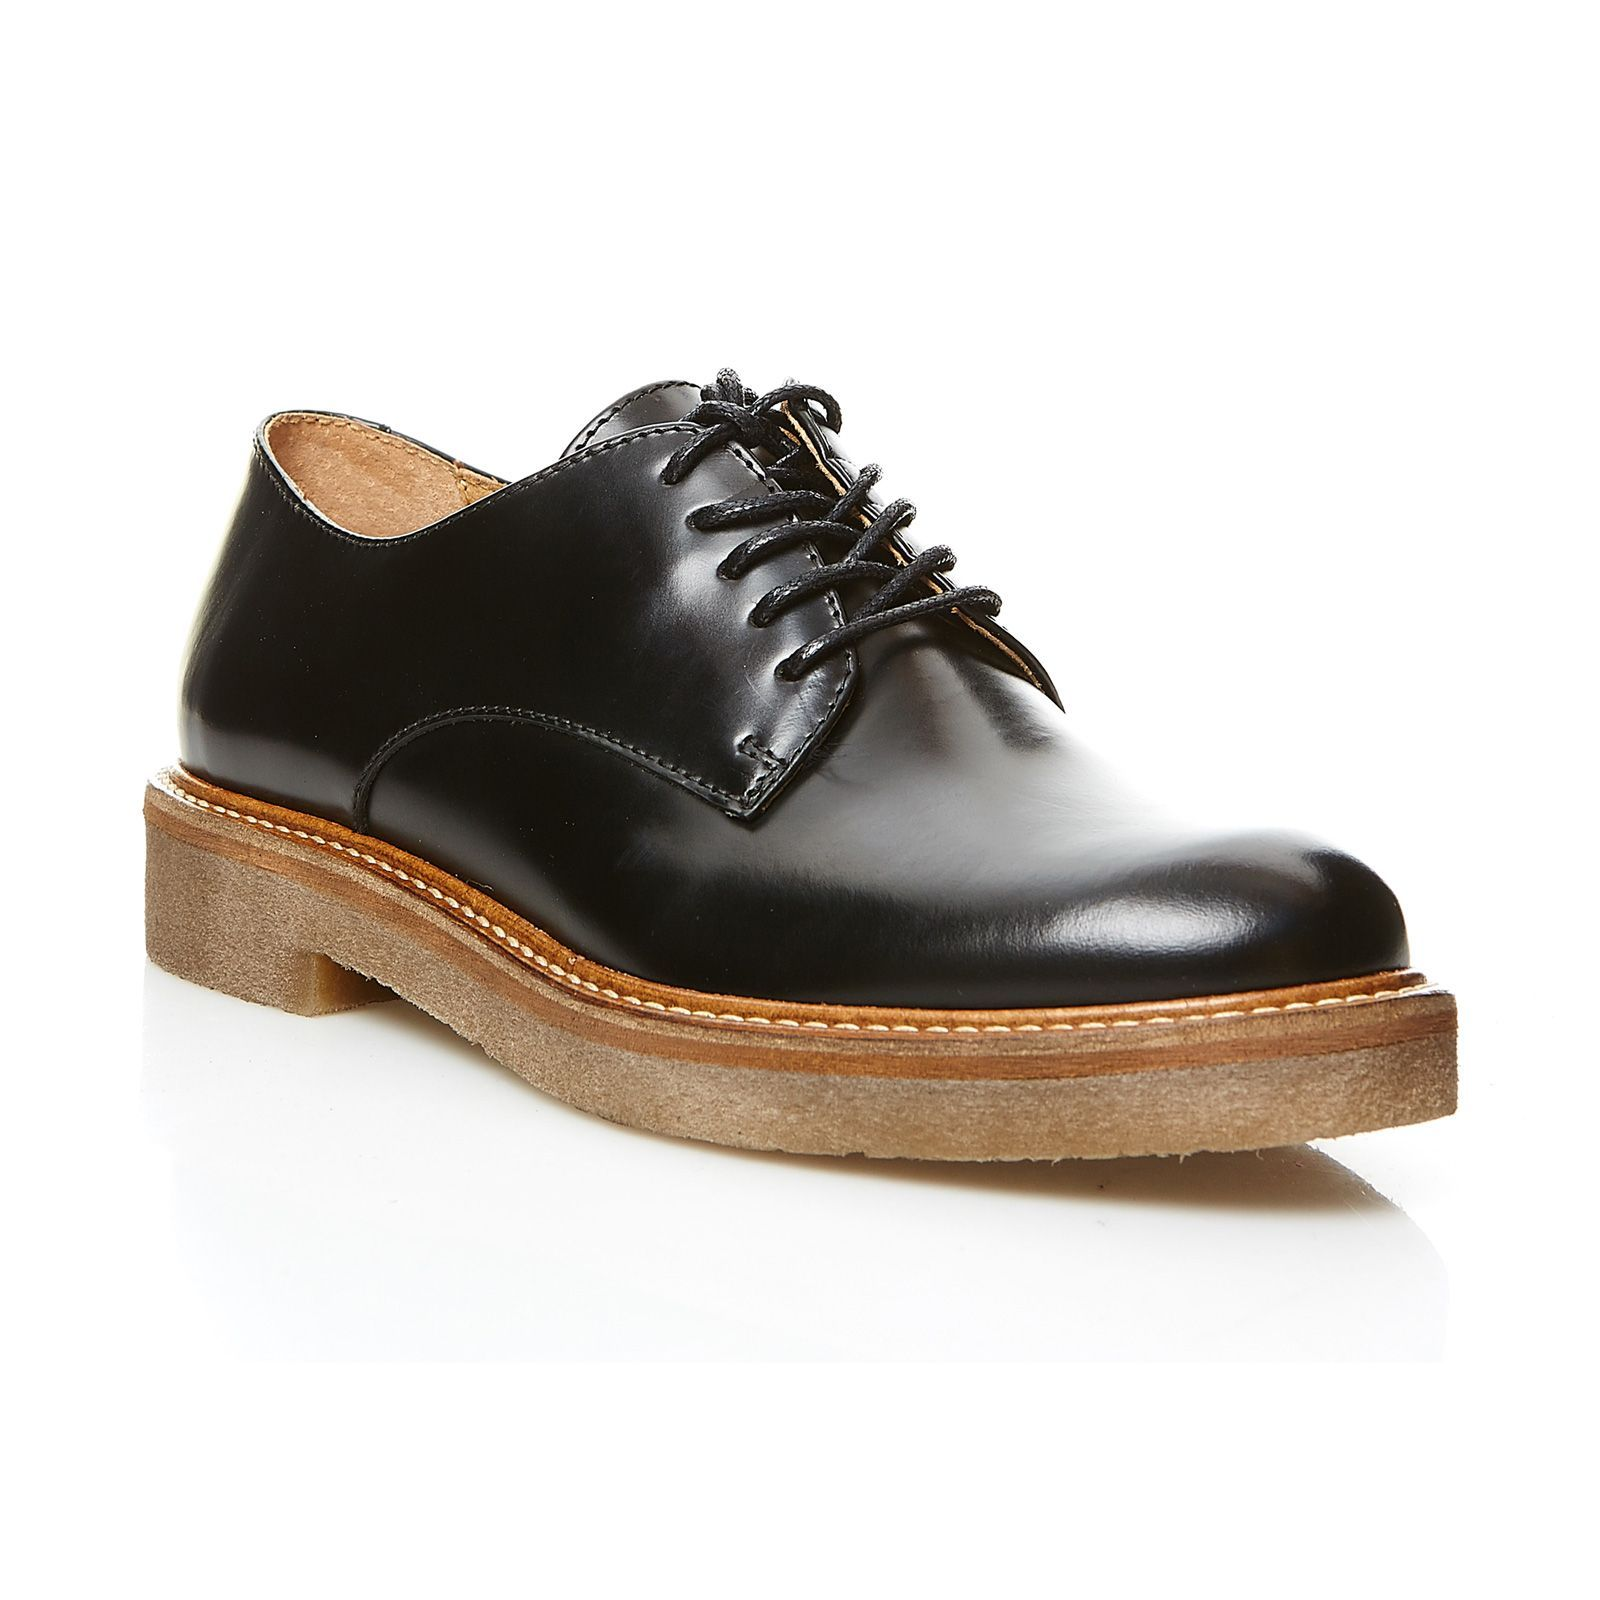 Kickers OXFORK - Derbies en cuir - noir   BrandAlley cbf25c4f2937